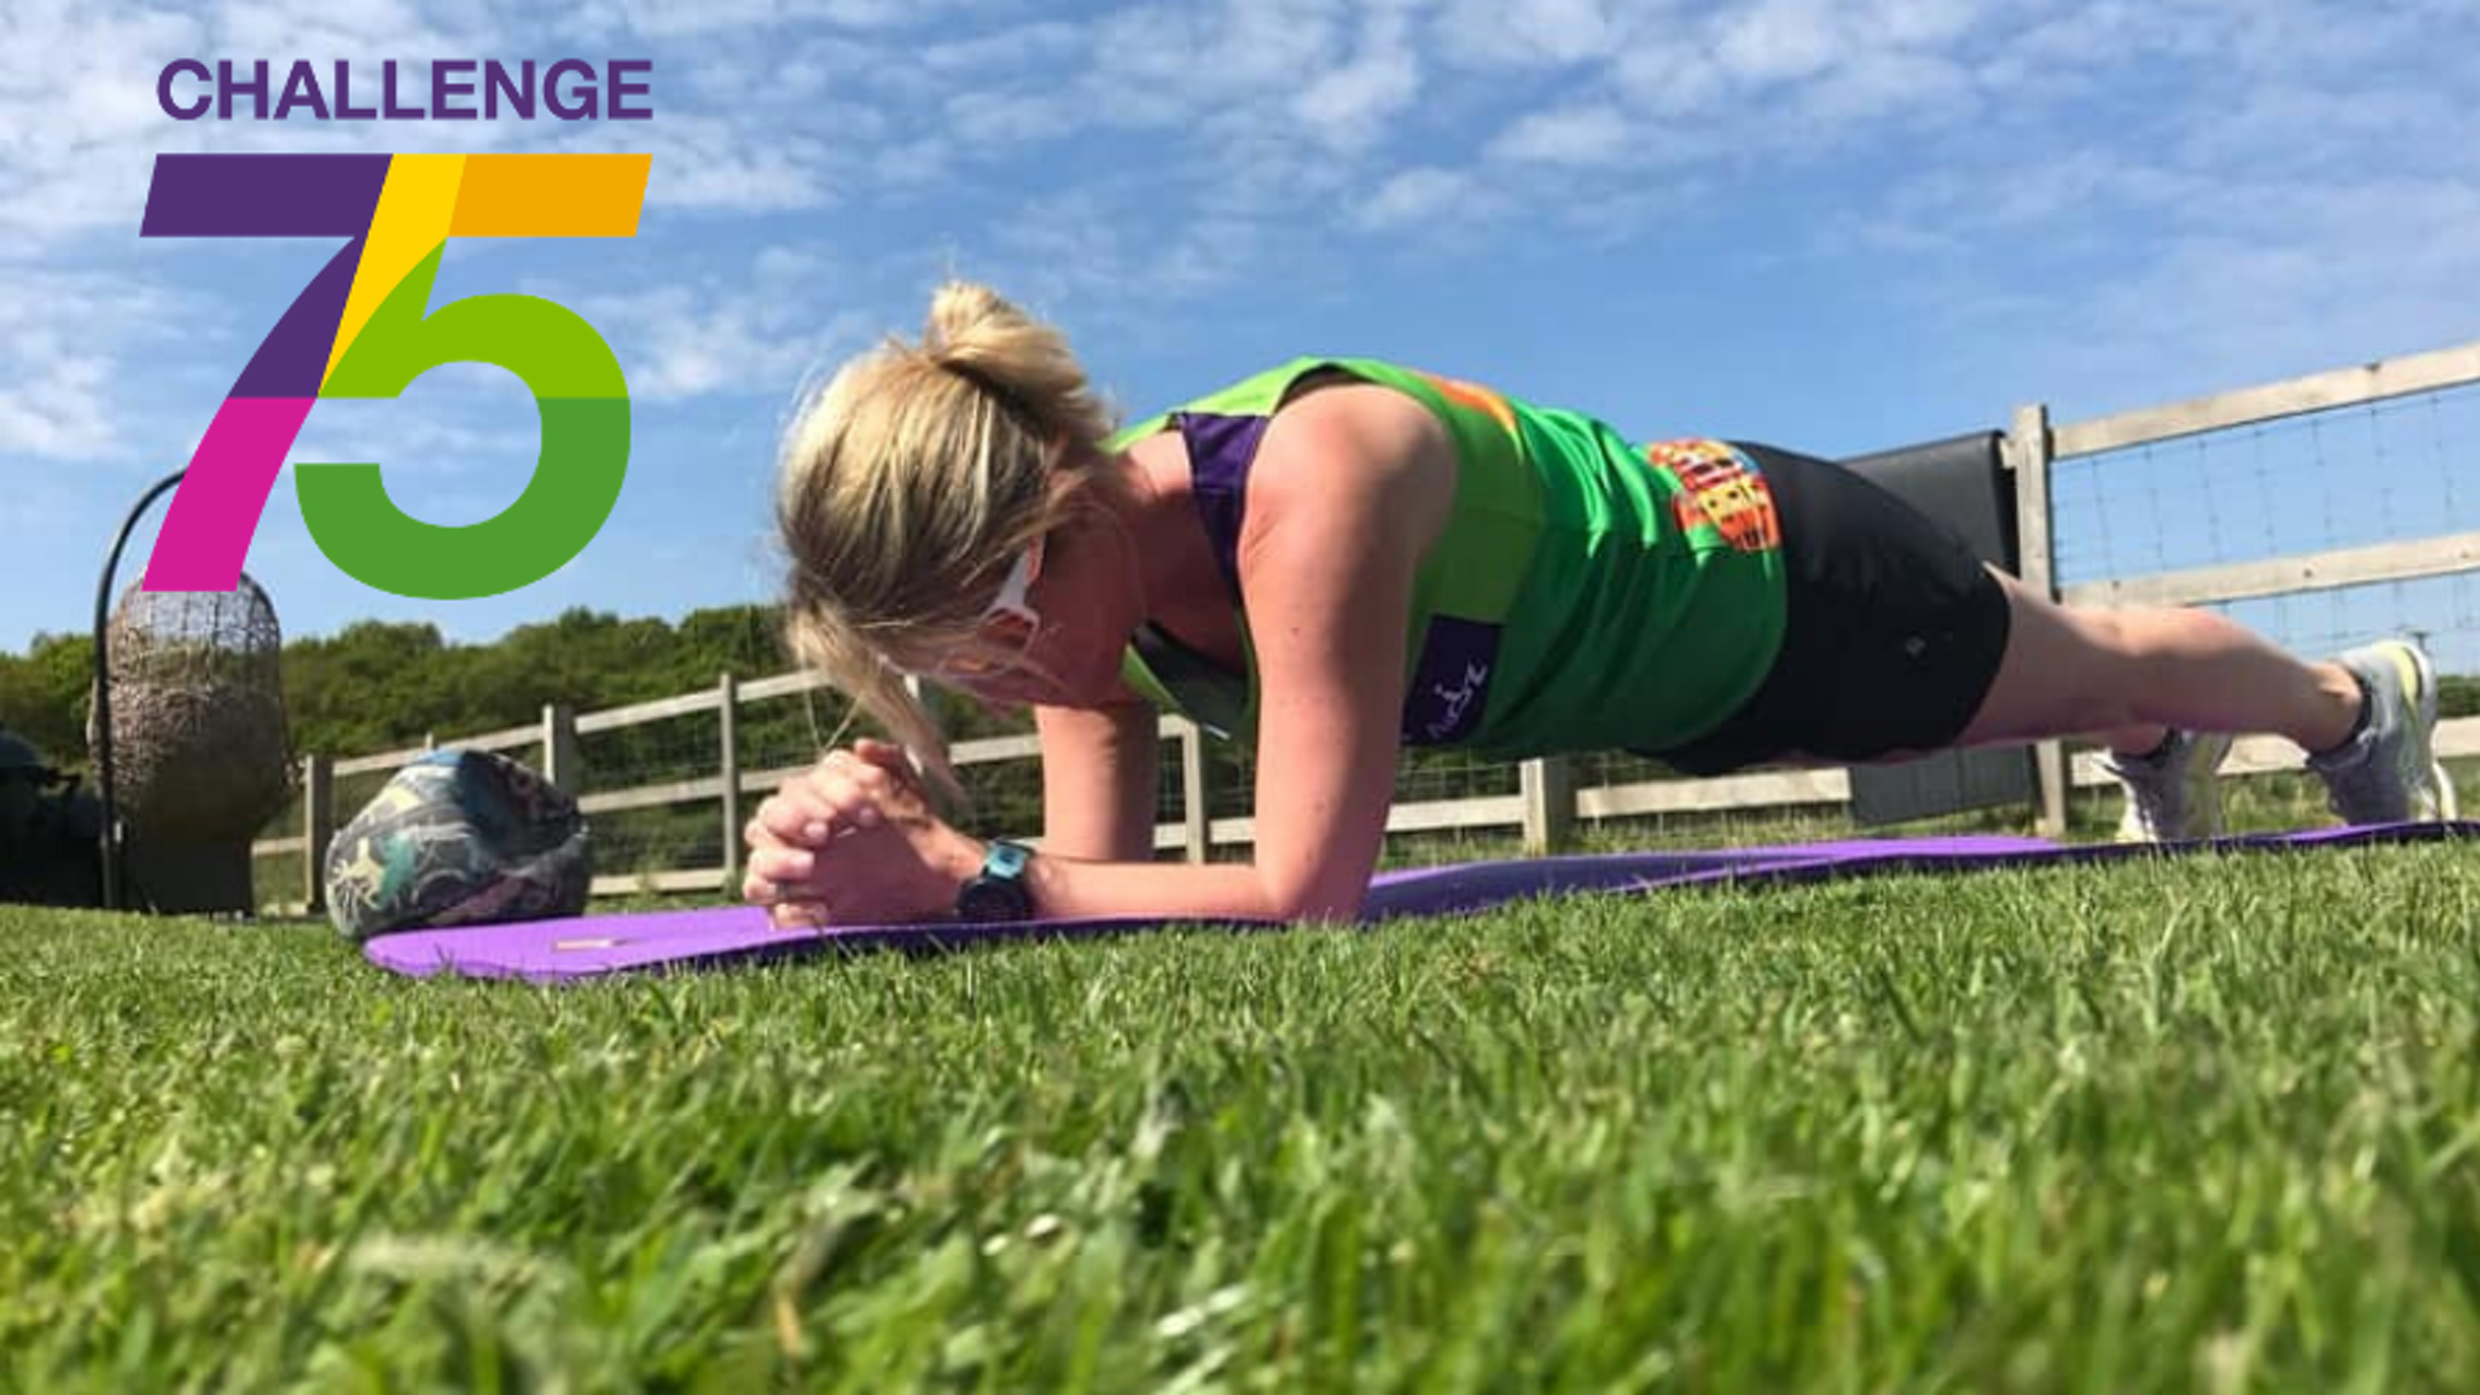 Female in plank position fundraising for Challenge 75